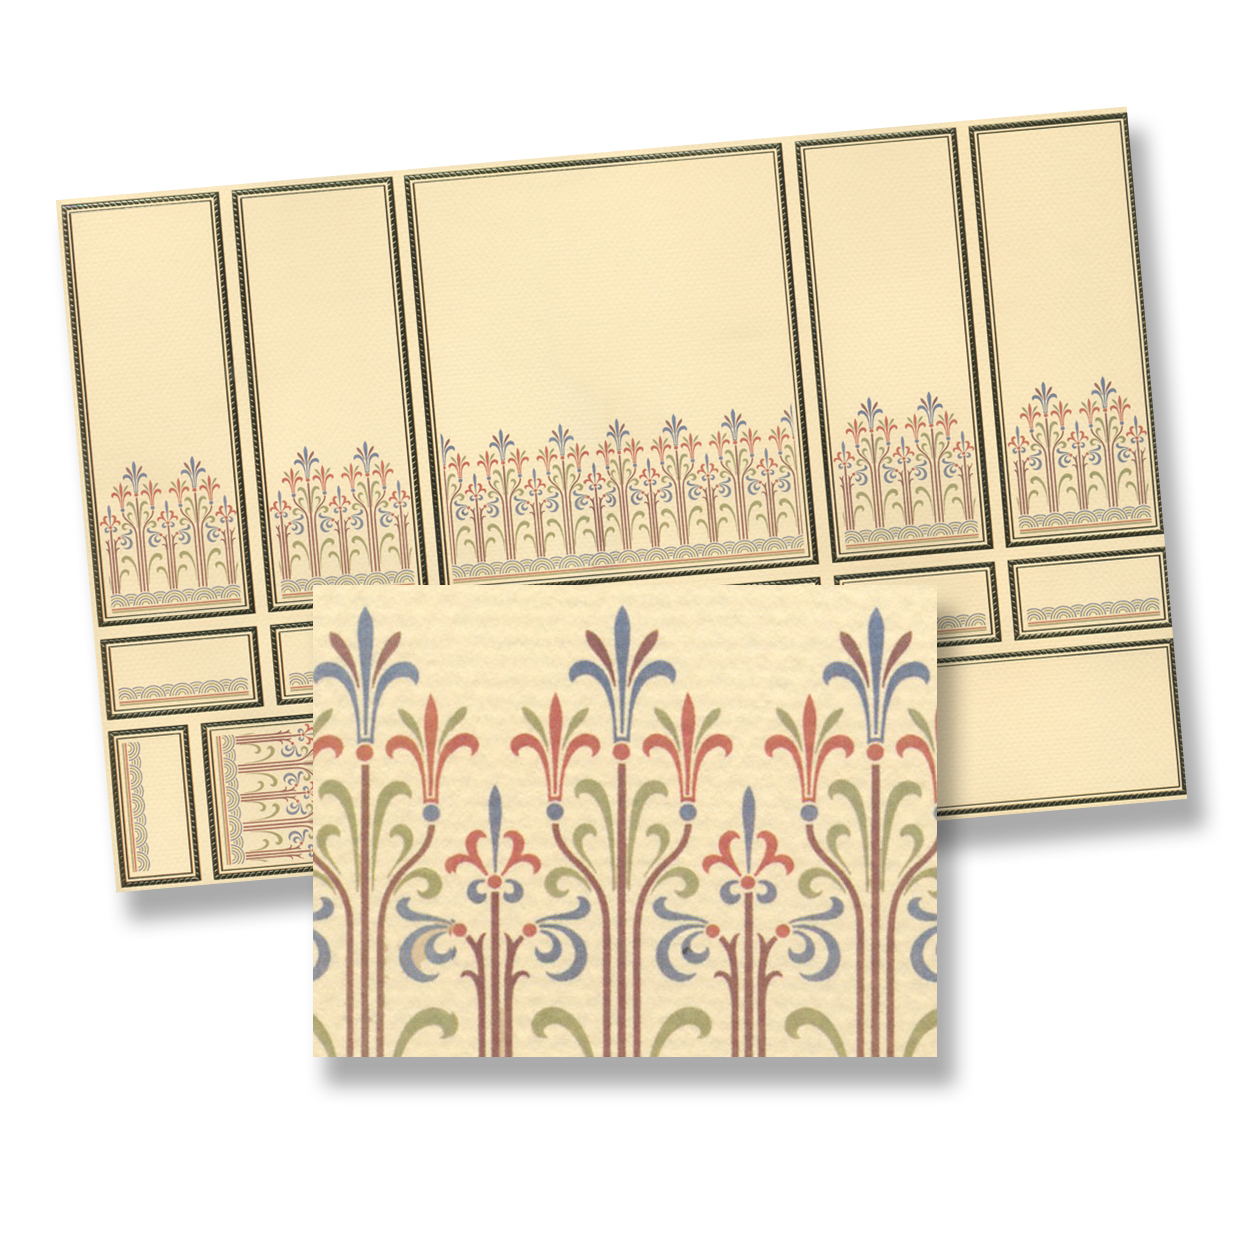 Deco Wall Panel Section For Dollhouse Miniature 1:12 Scale